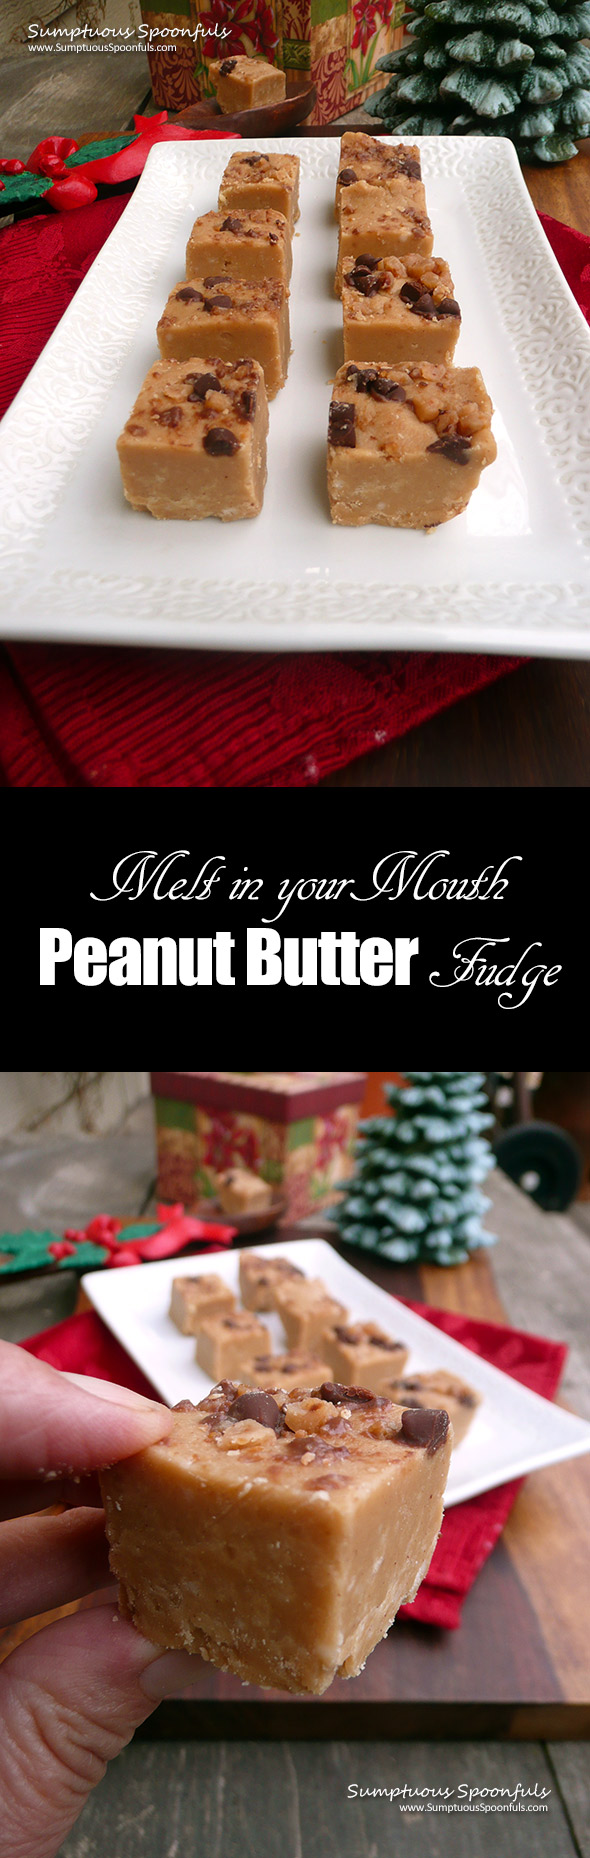 Melt in your Mouth Peanut Butter Fudge ~ Sumptuous Spoonfuls #peanutbutter #fudge #recipe